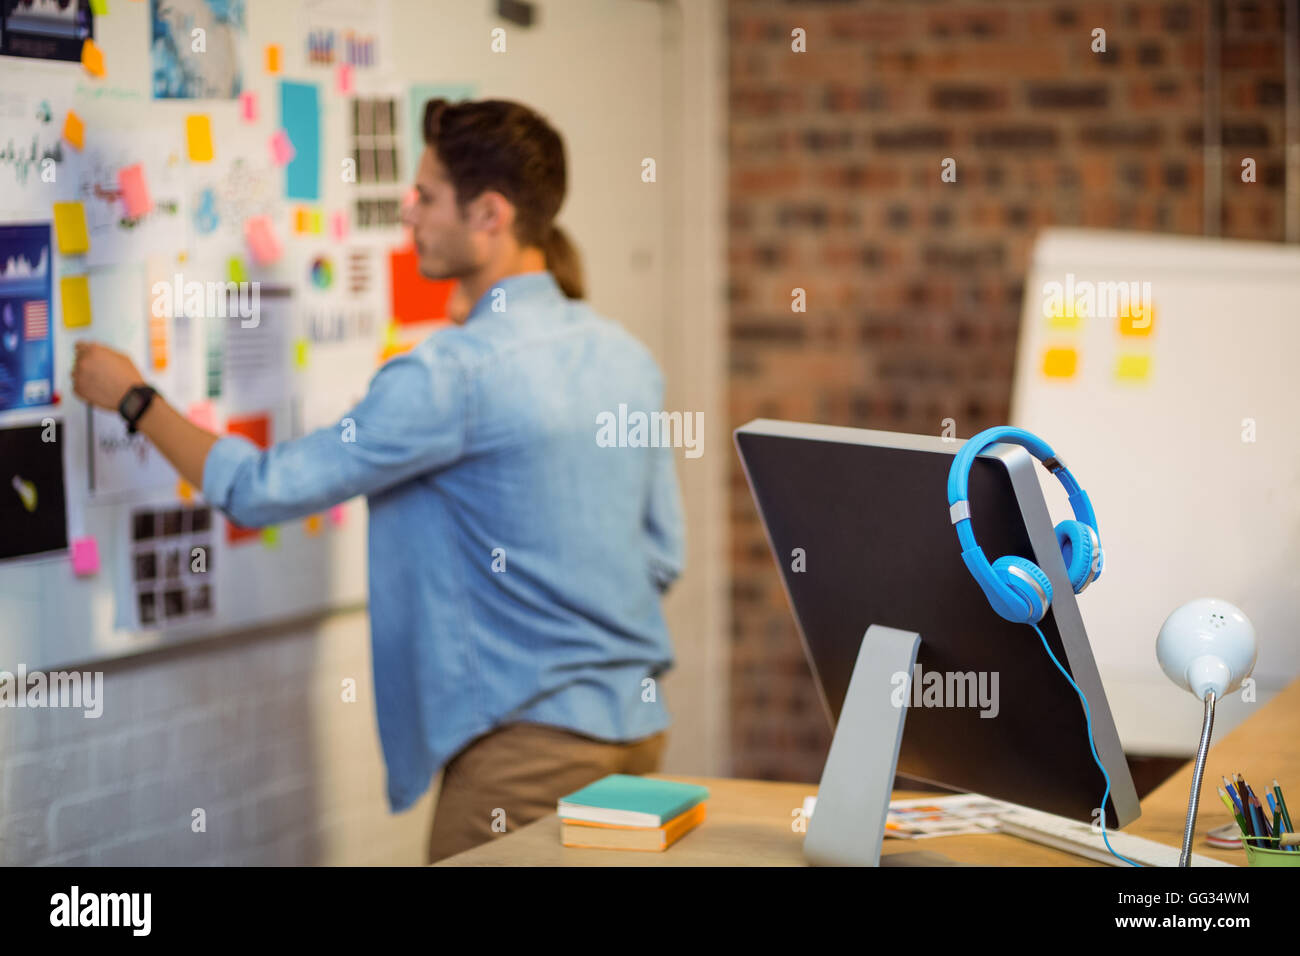 Business executive putting sticky notes on whiteboard - Stock Image